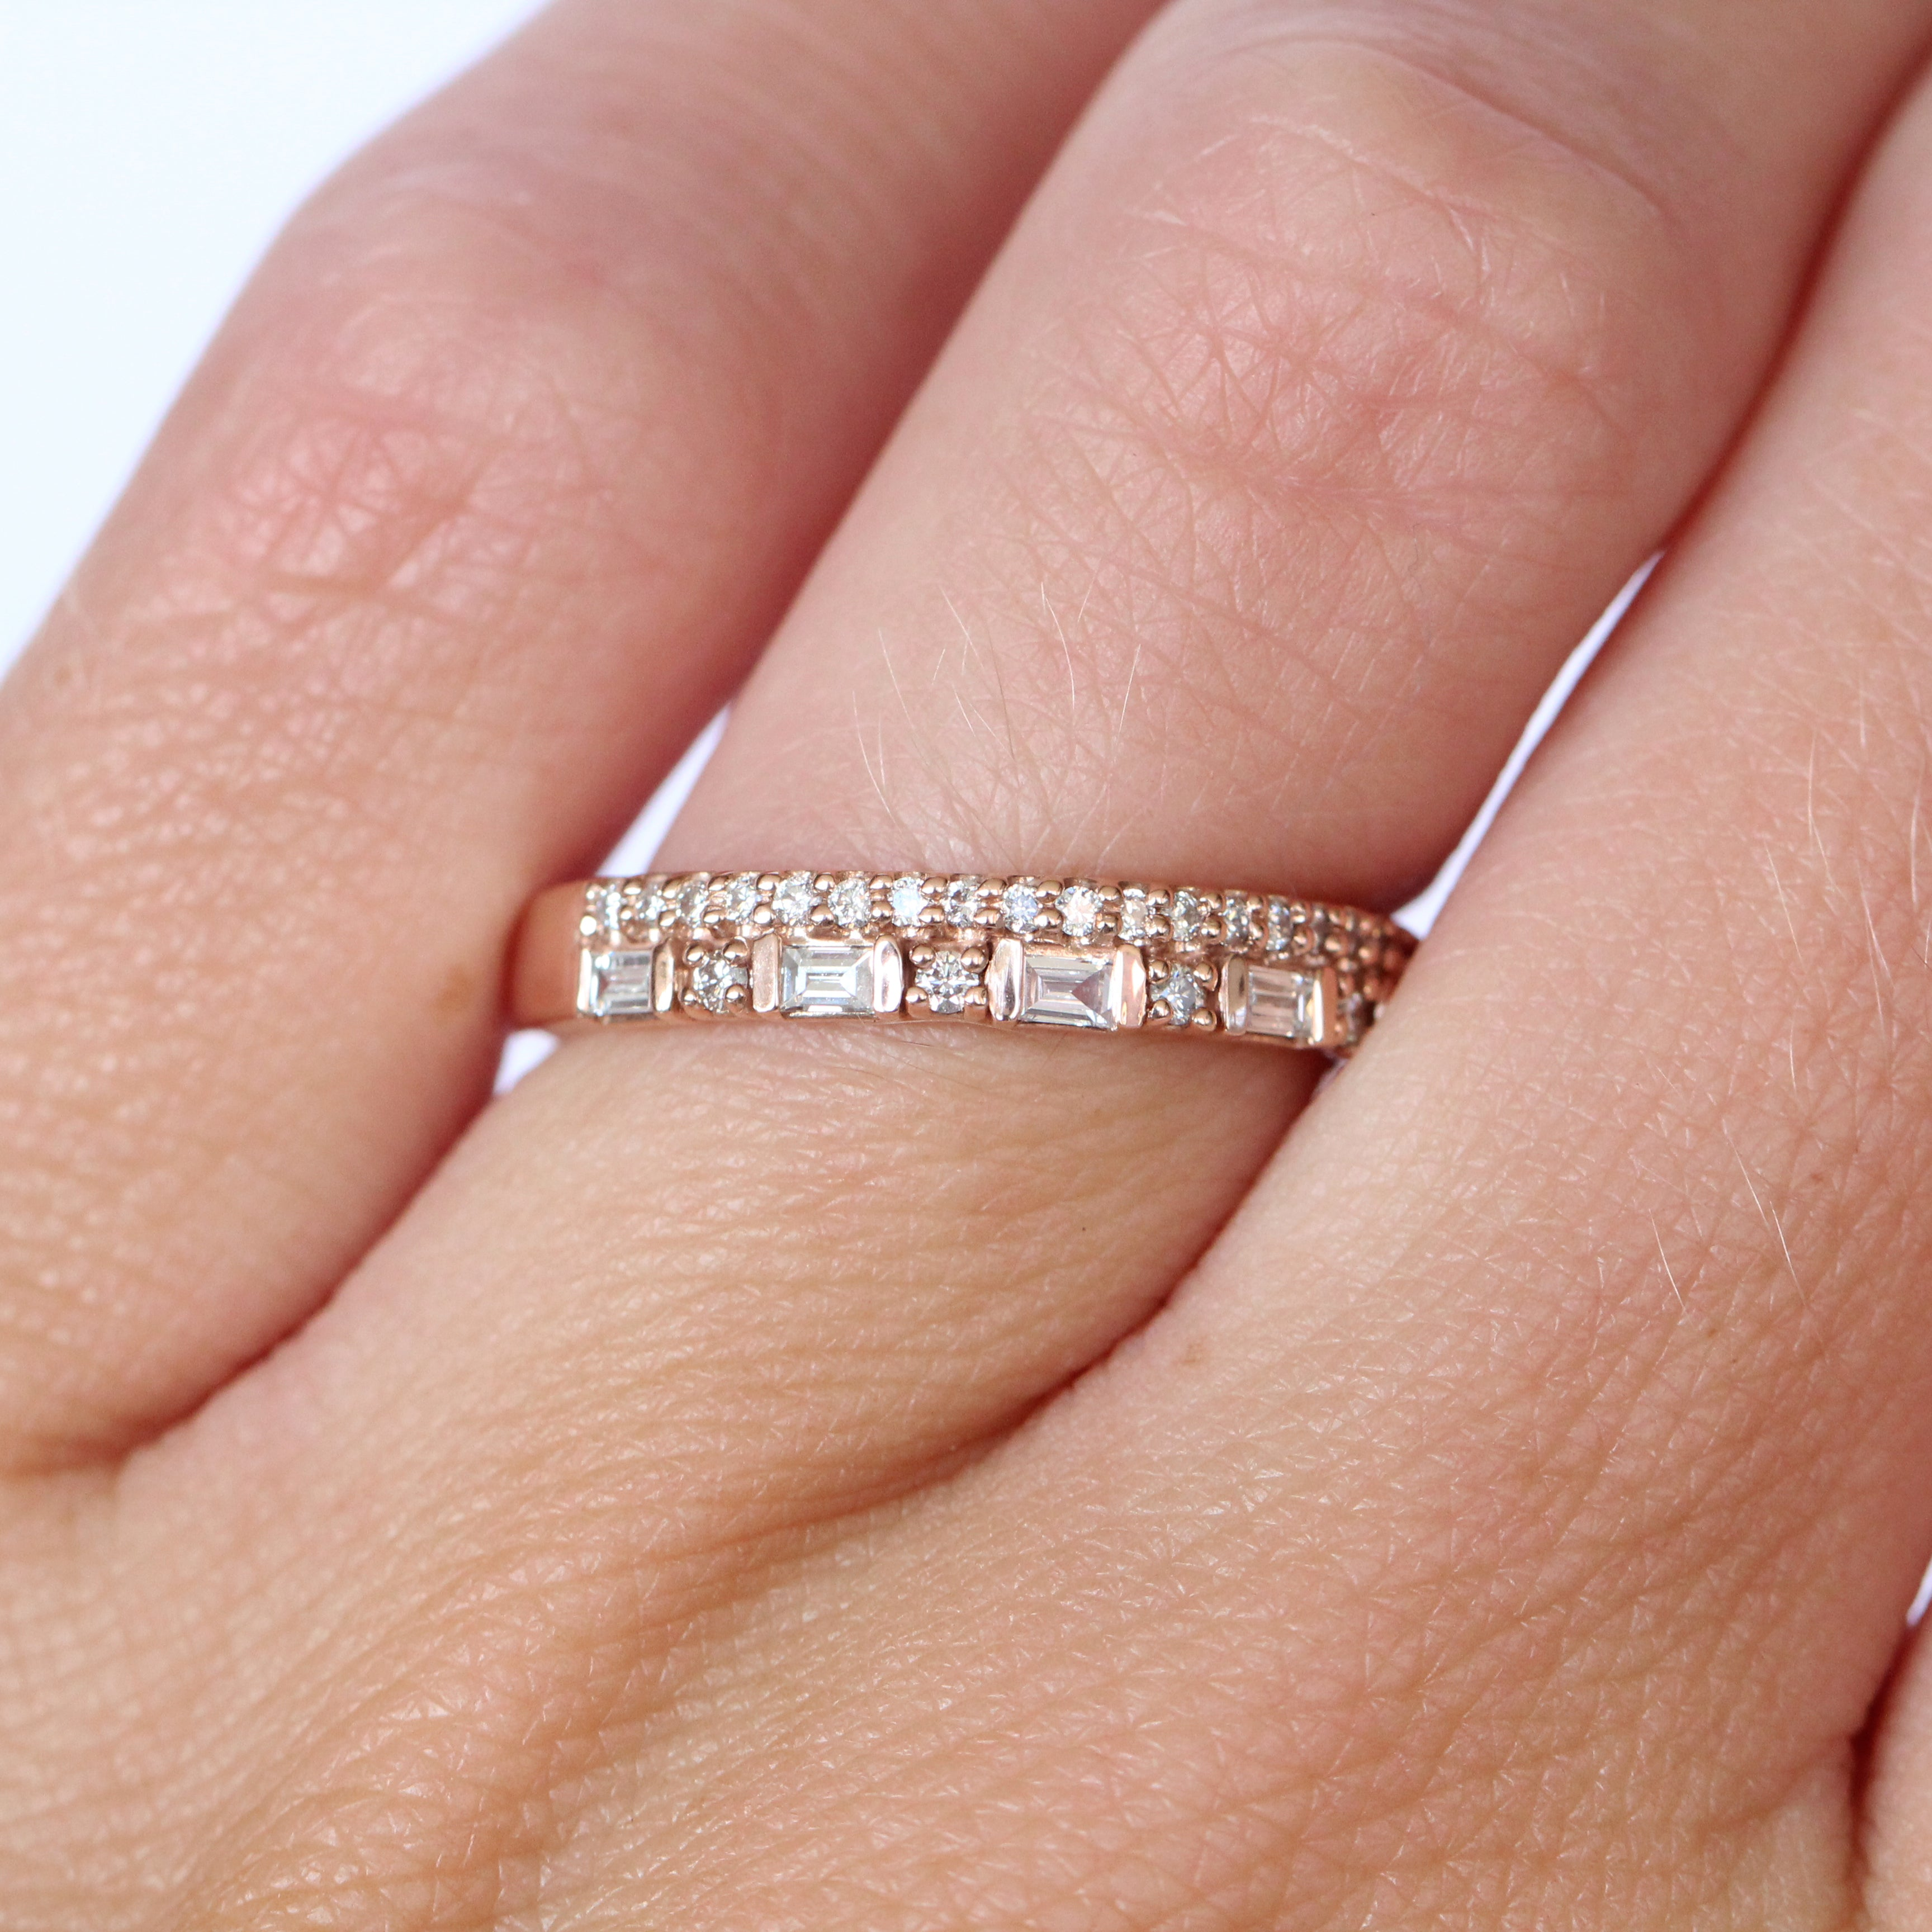 Rosalind Diamond Engagement Ring Band - White diamonds - Celestial Diamonds ® by Midwinter Co.